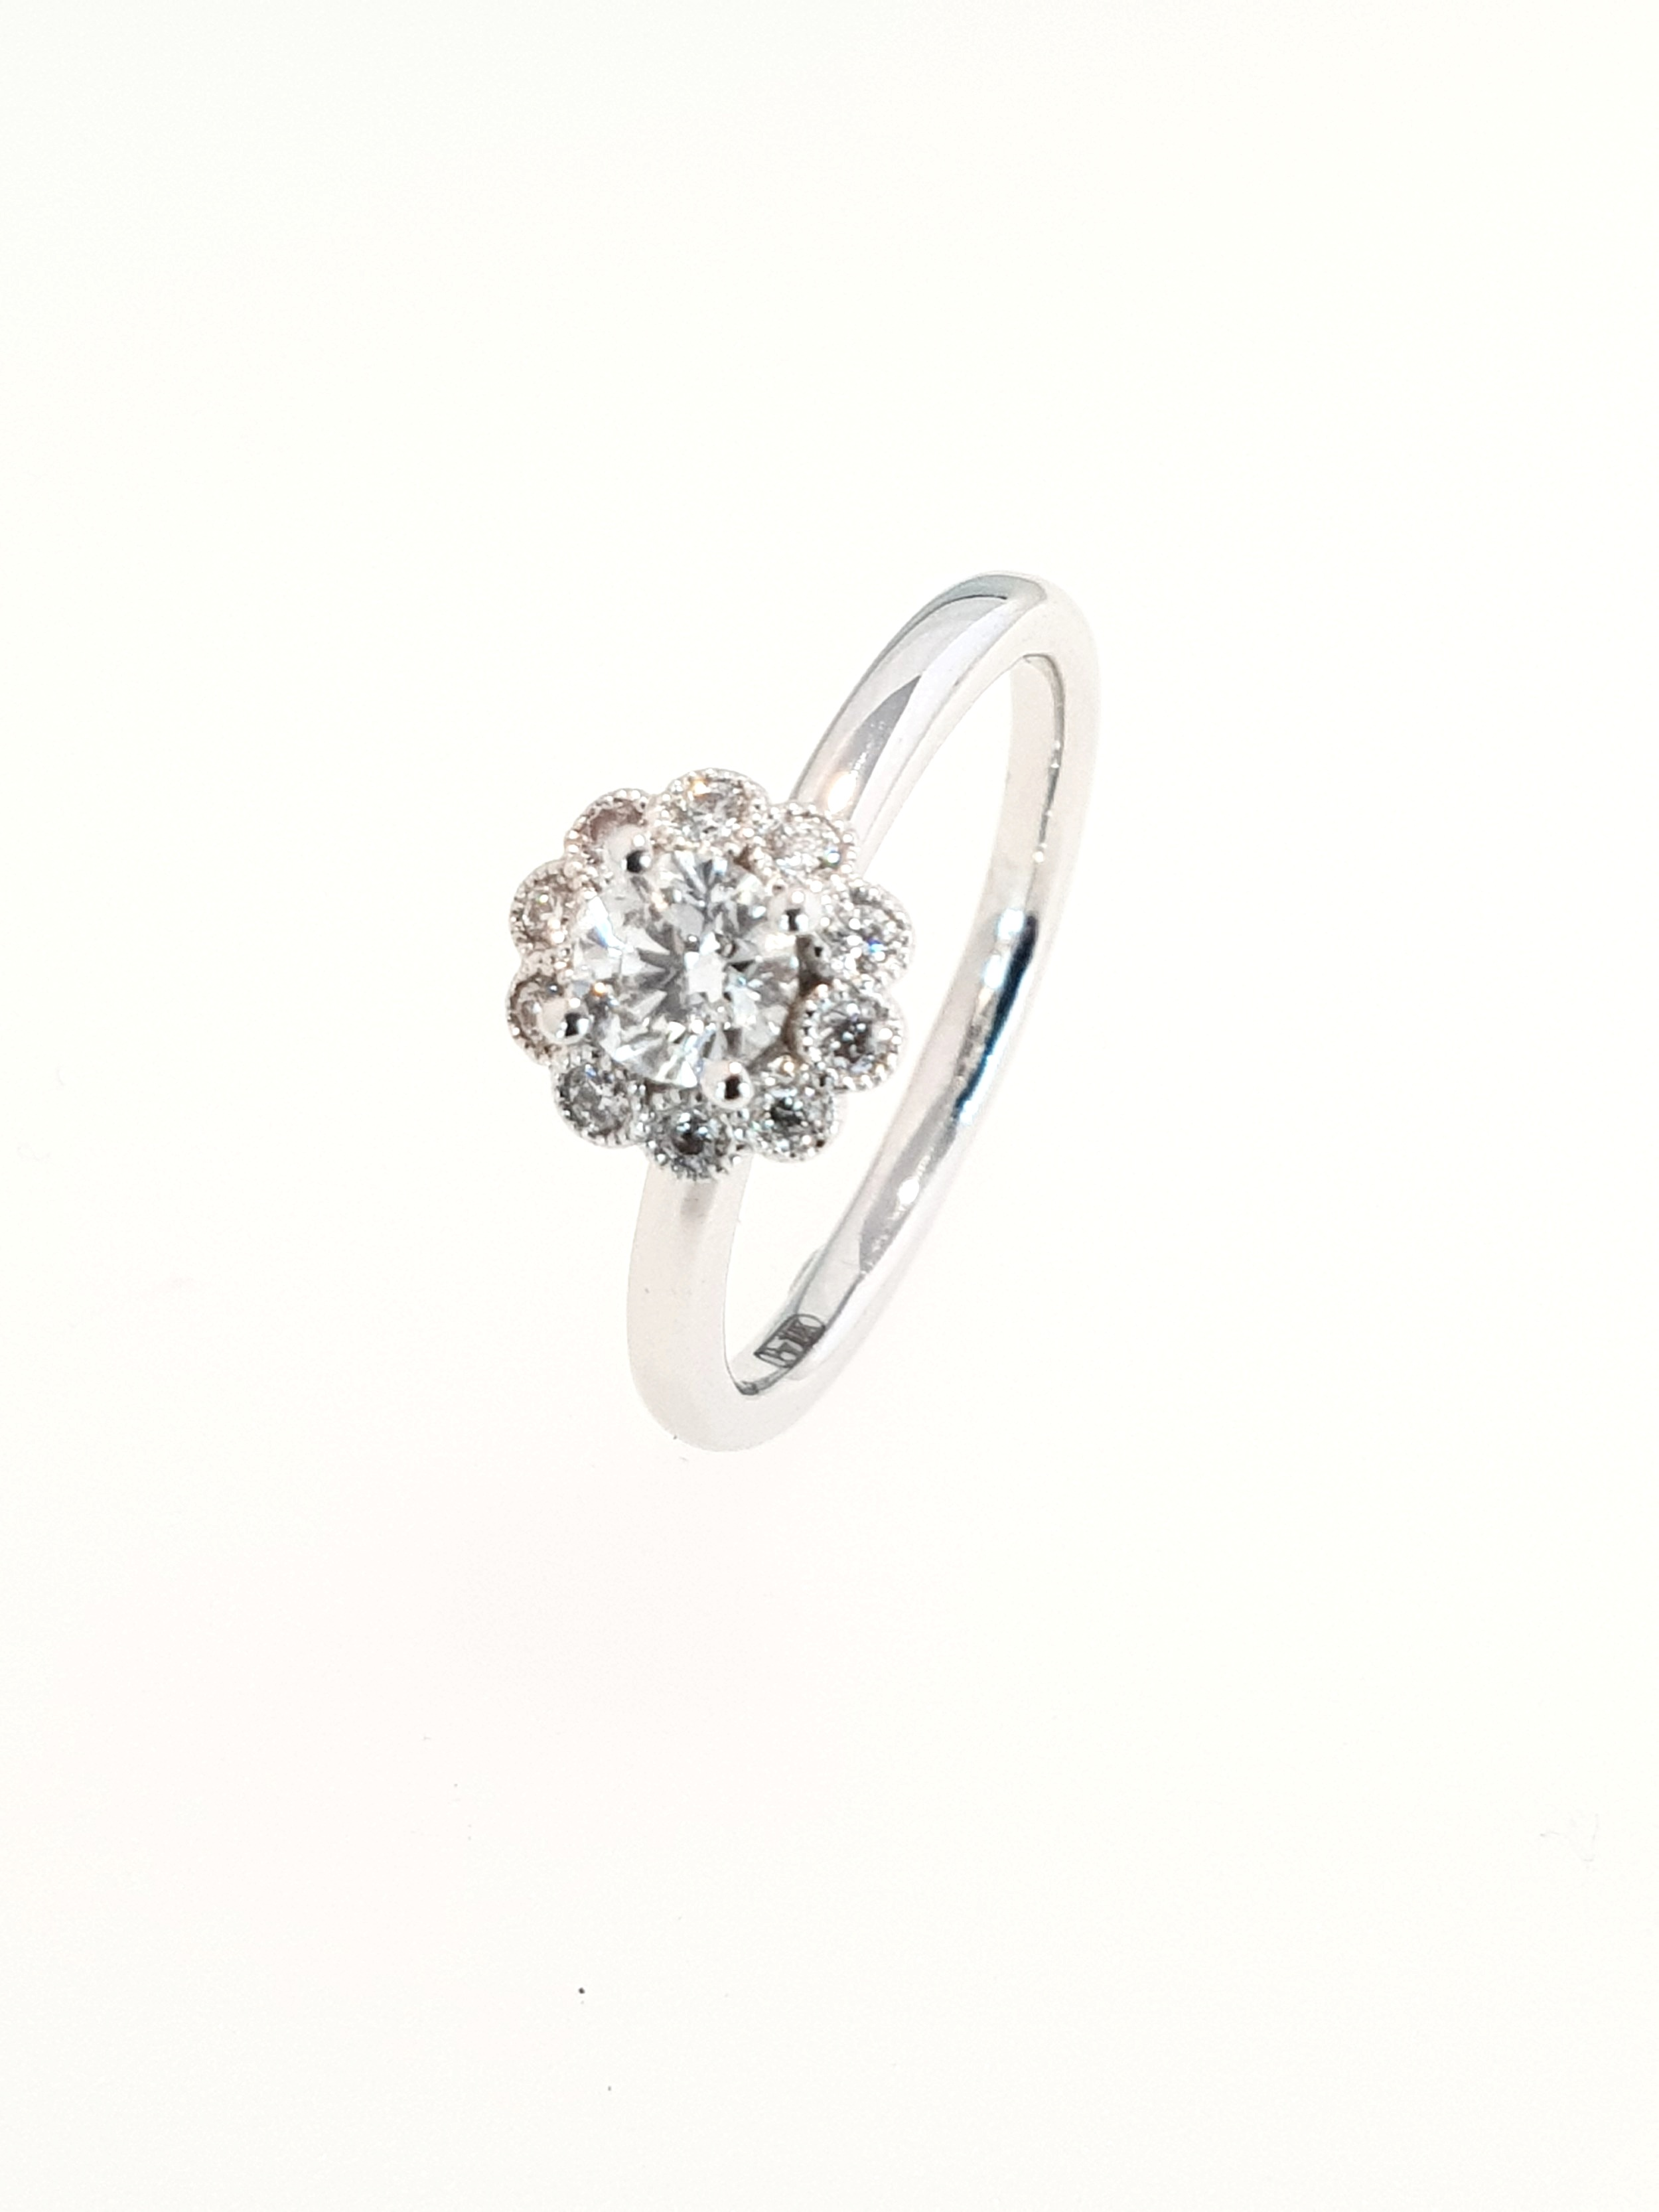 18ct White Gold Diamond Halo Ring  Centre: .40ct, G, SI1 & 10 x .10ct Halo  Stock Code: N8834  £1800